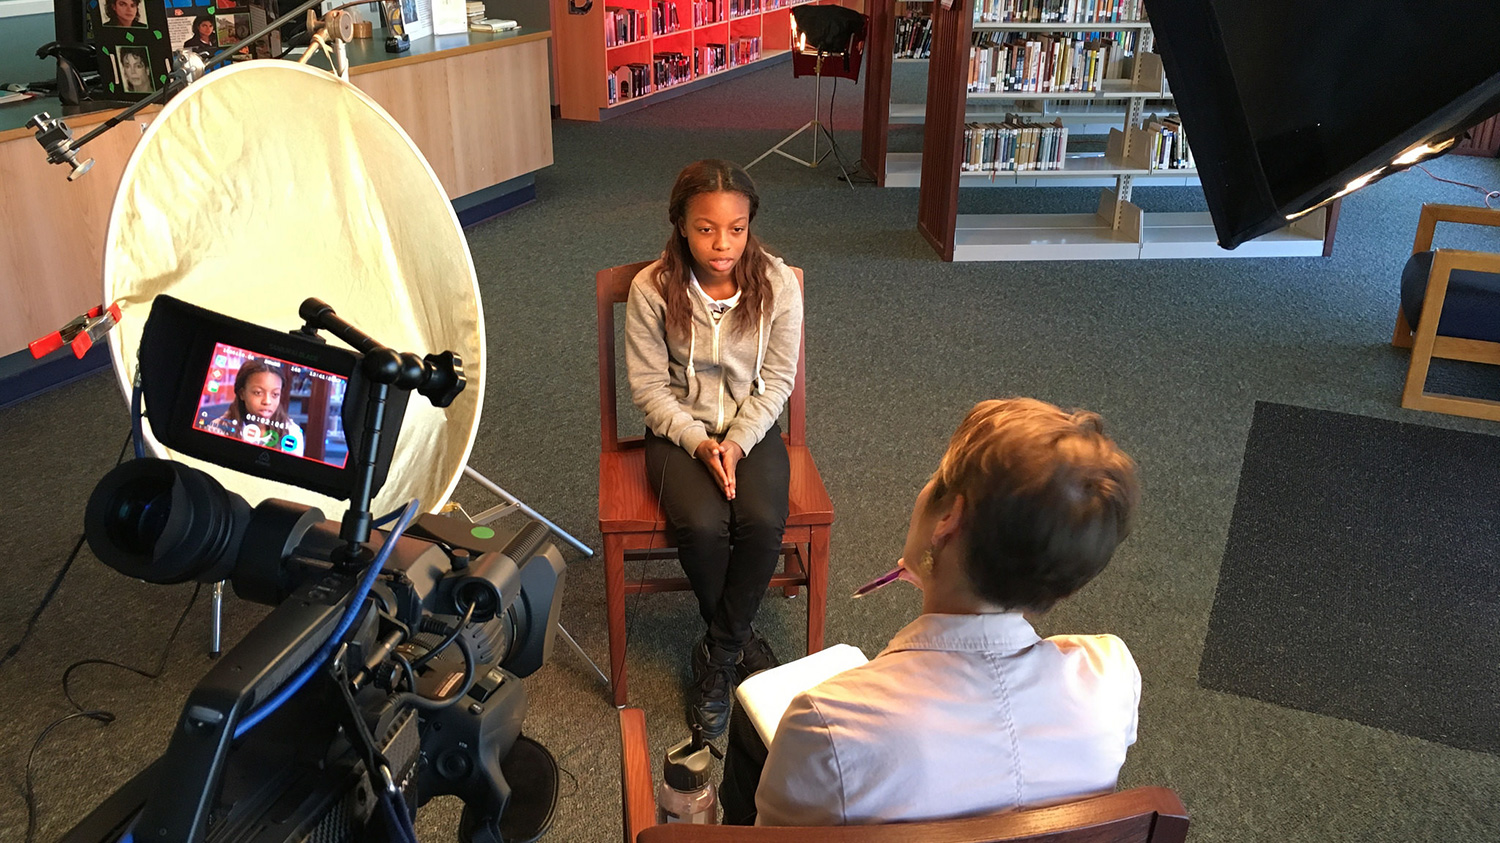 Student being interviewed by WFSU staff in a school library.